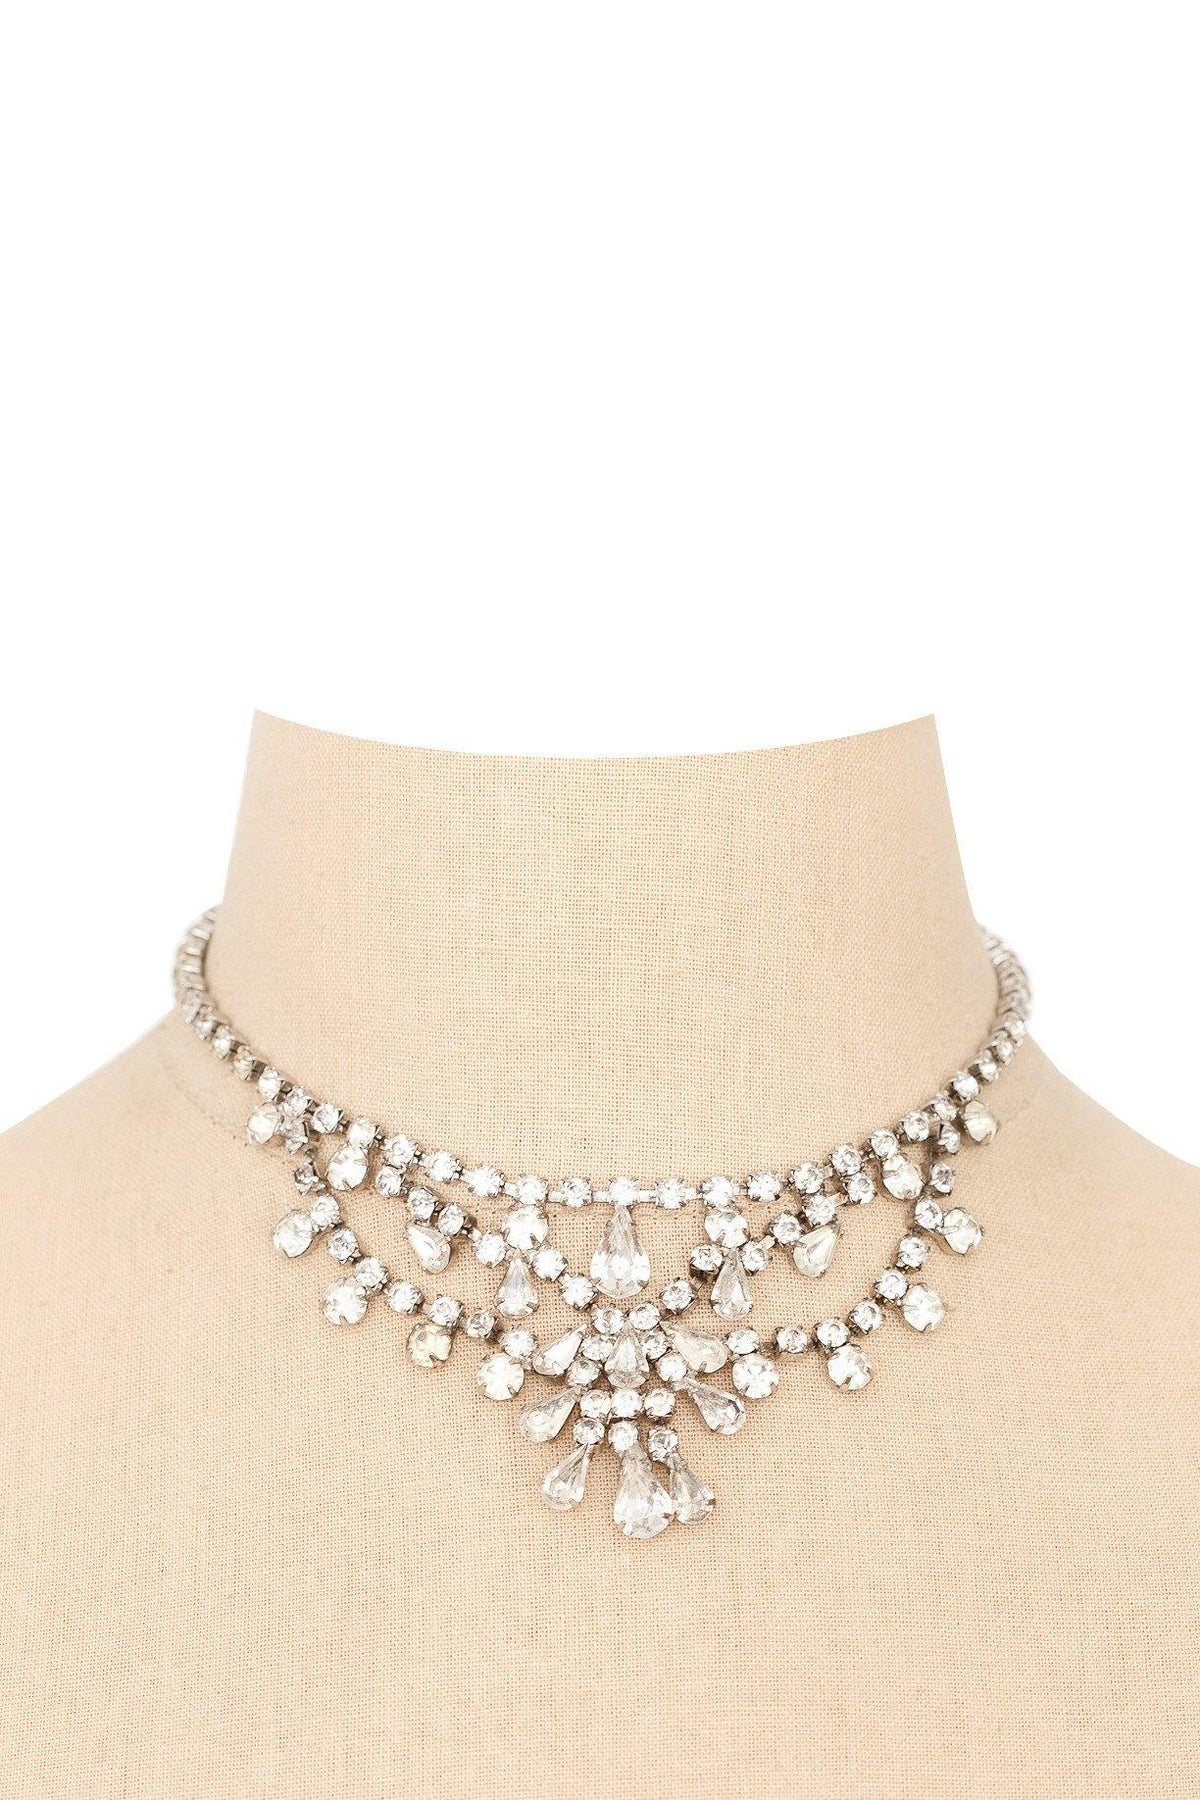 1950's Vintage Rhinestone Statement Necklace